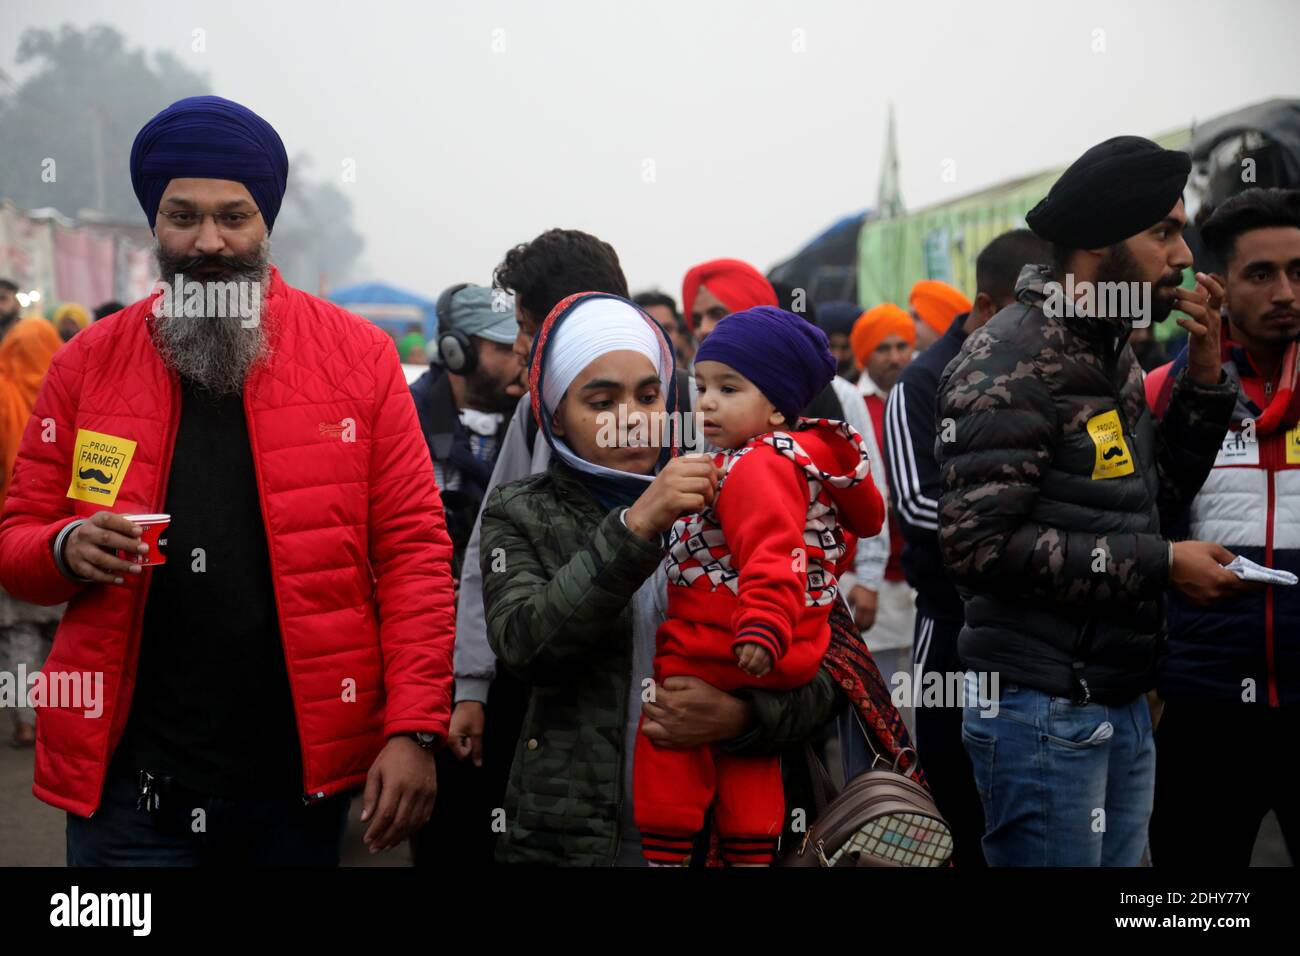 A protester carrying a baby during the demonstration.Thousands of farmers from Punjab, Haryana and Uttar Pradesh blocked Singhu border (Delhi-Haryana Highway), Ghazipur border (Delhi-Meerut Highway), Tikri border and Gurugram Border agitating for the 17 days. Against the Centre's new farm reform laws.  Indian Union Minister of Agriculture and Farmers Welfare, Narendra Singh Tomar appeals to farmers to end their protest and work with the government. Stock Photo